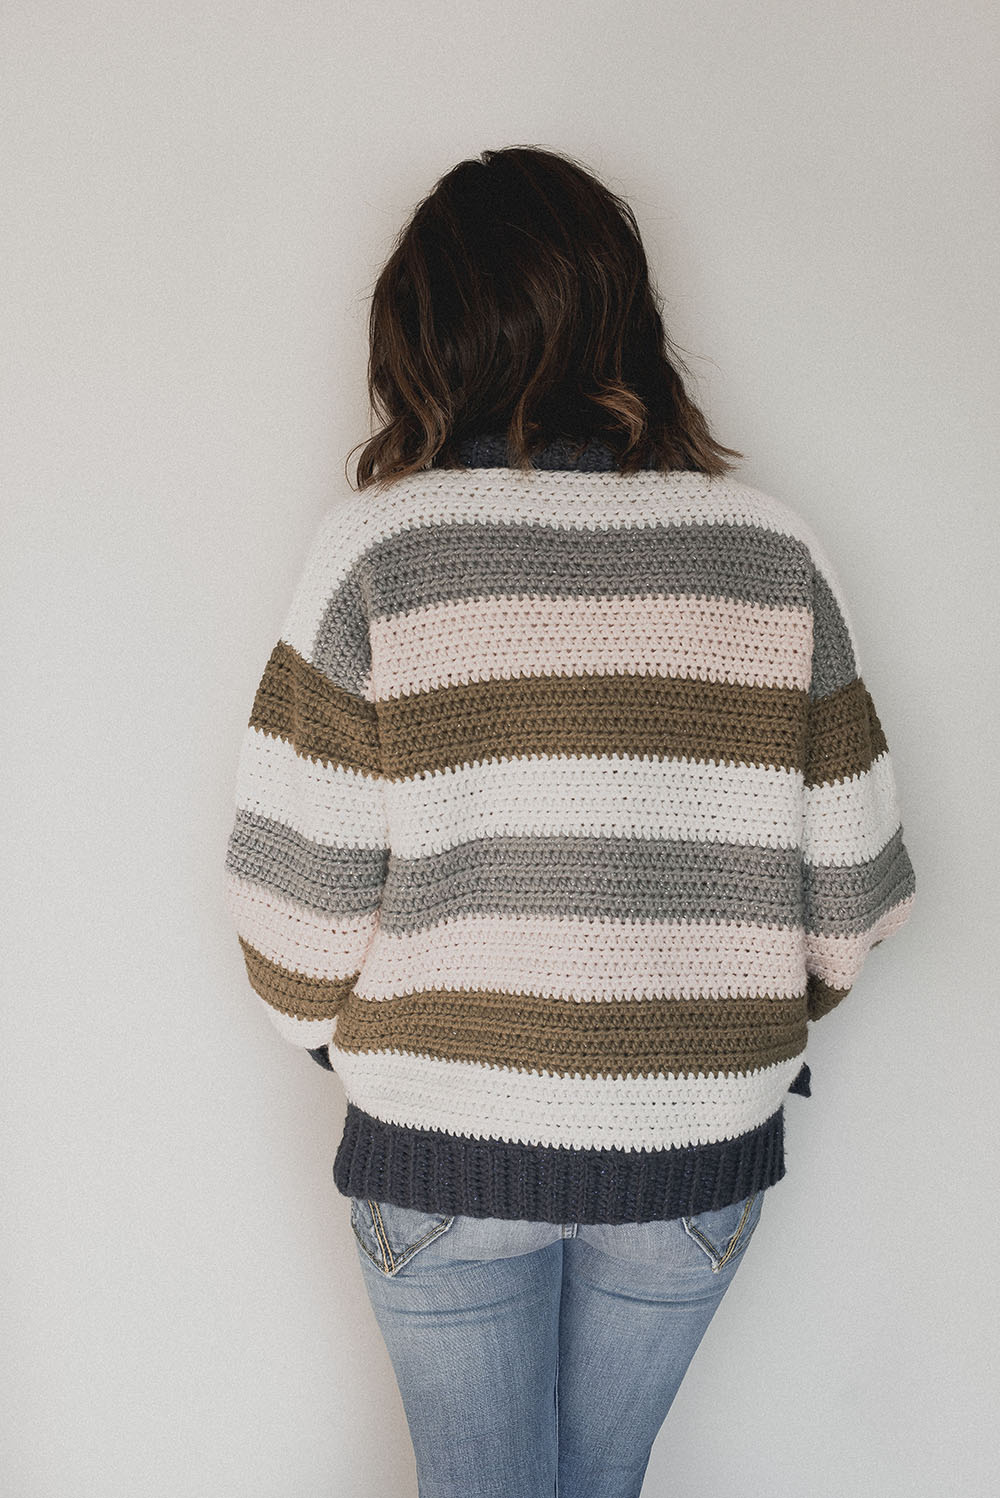 Free Crochet Pattern - Retro Stripes Sweater - Megmade with Love